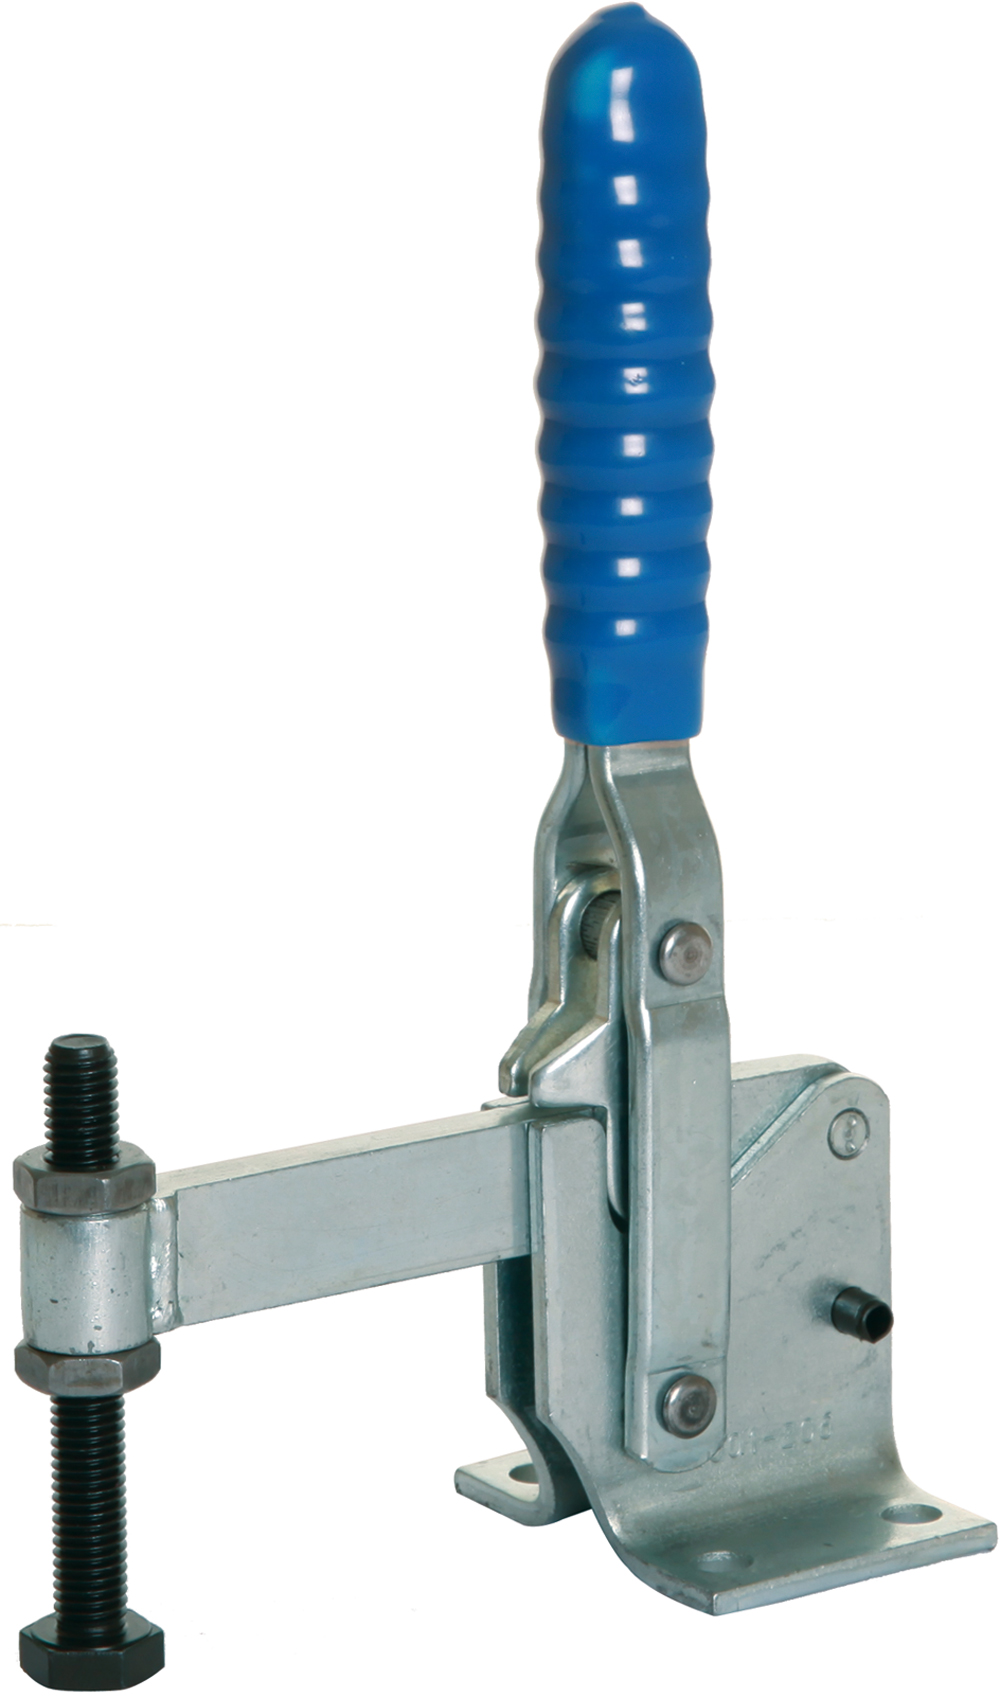 Toggle Clamp Vertical Action Mild Steel Zinc Plate Passivate (Silver Blue)